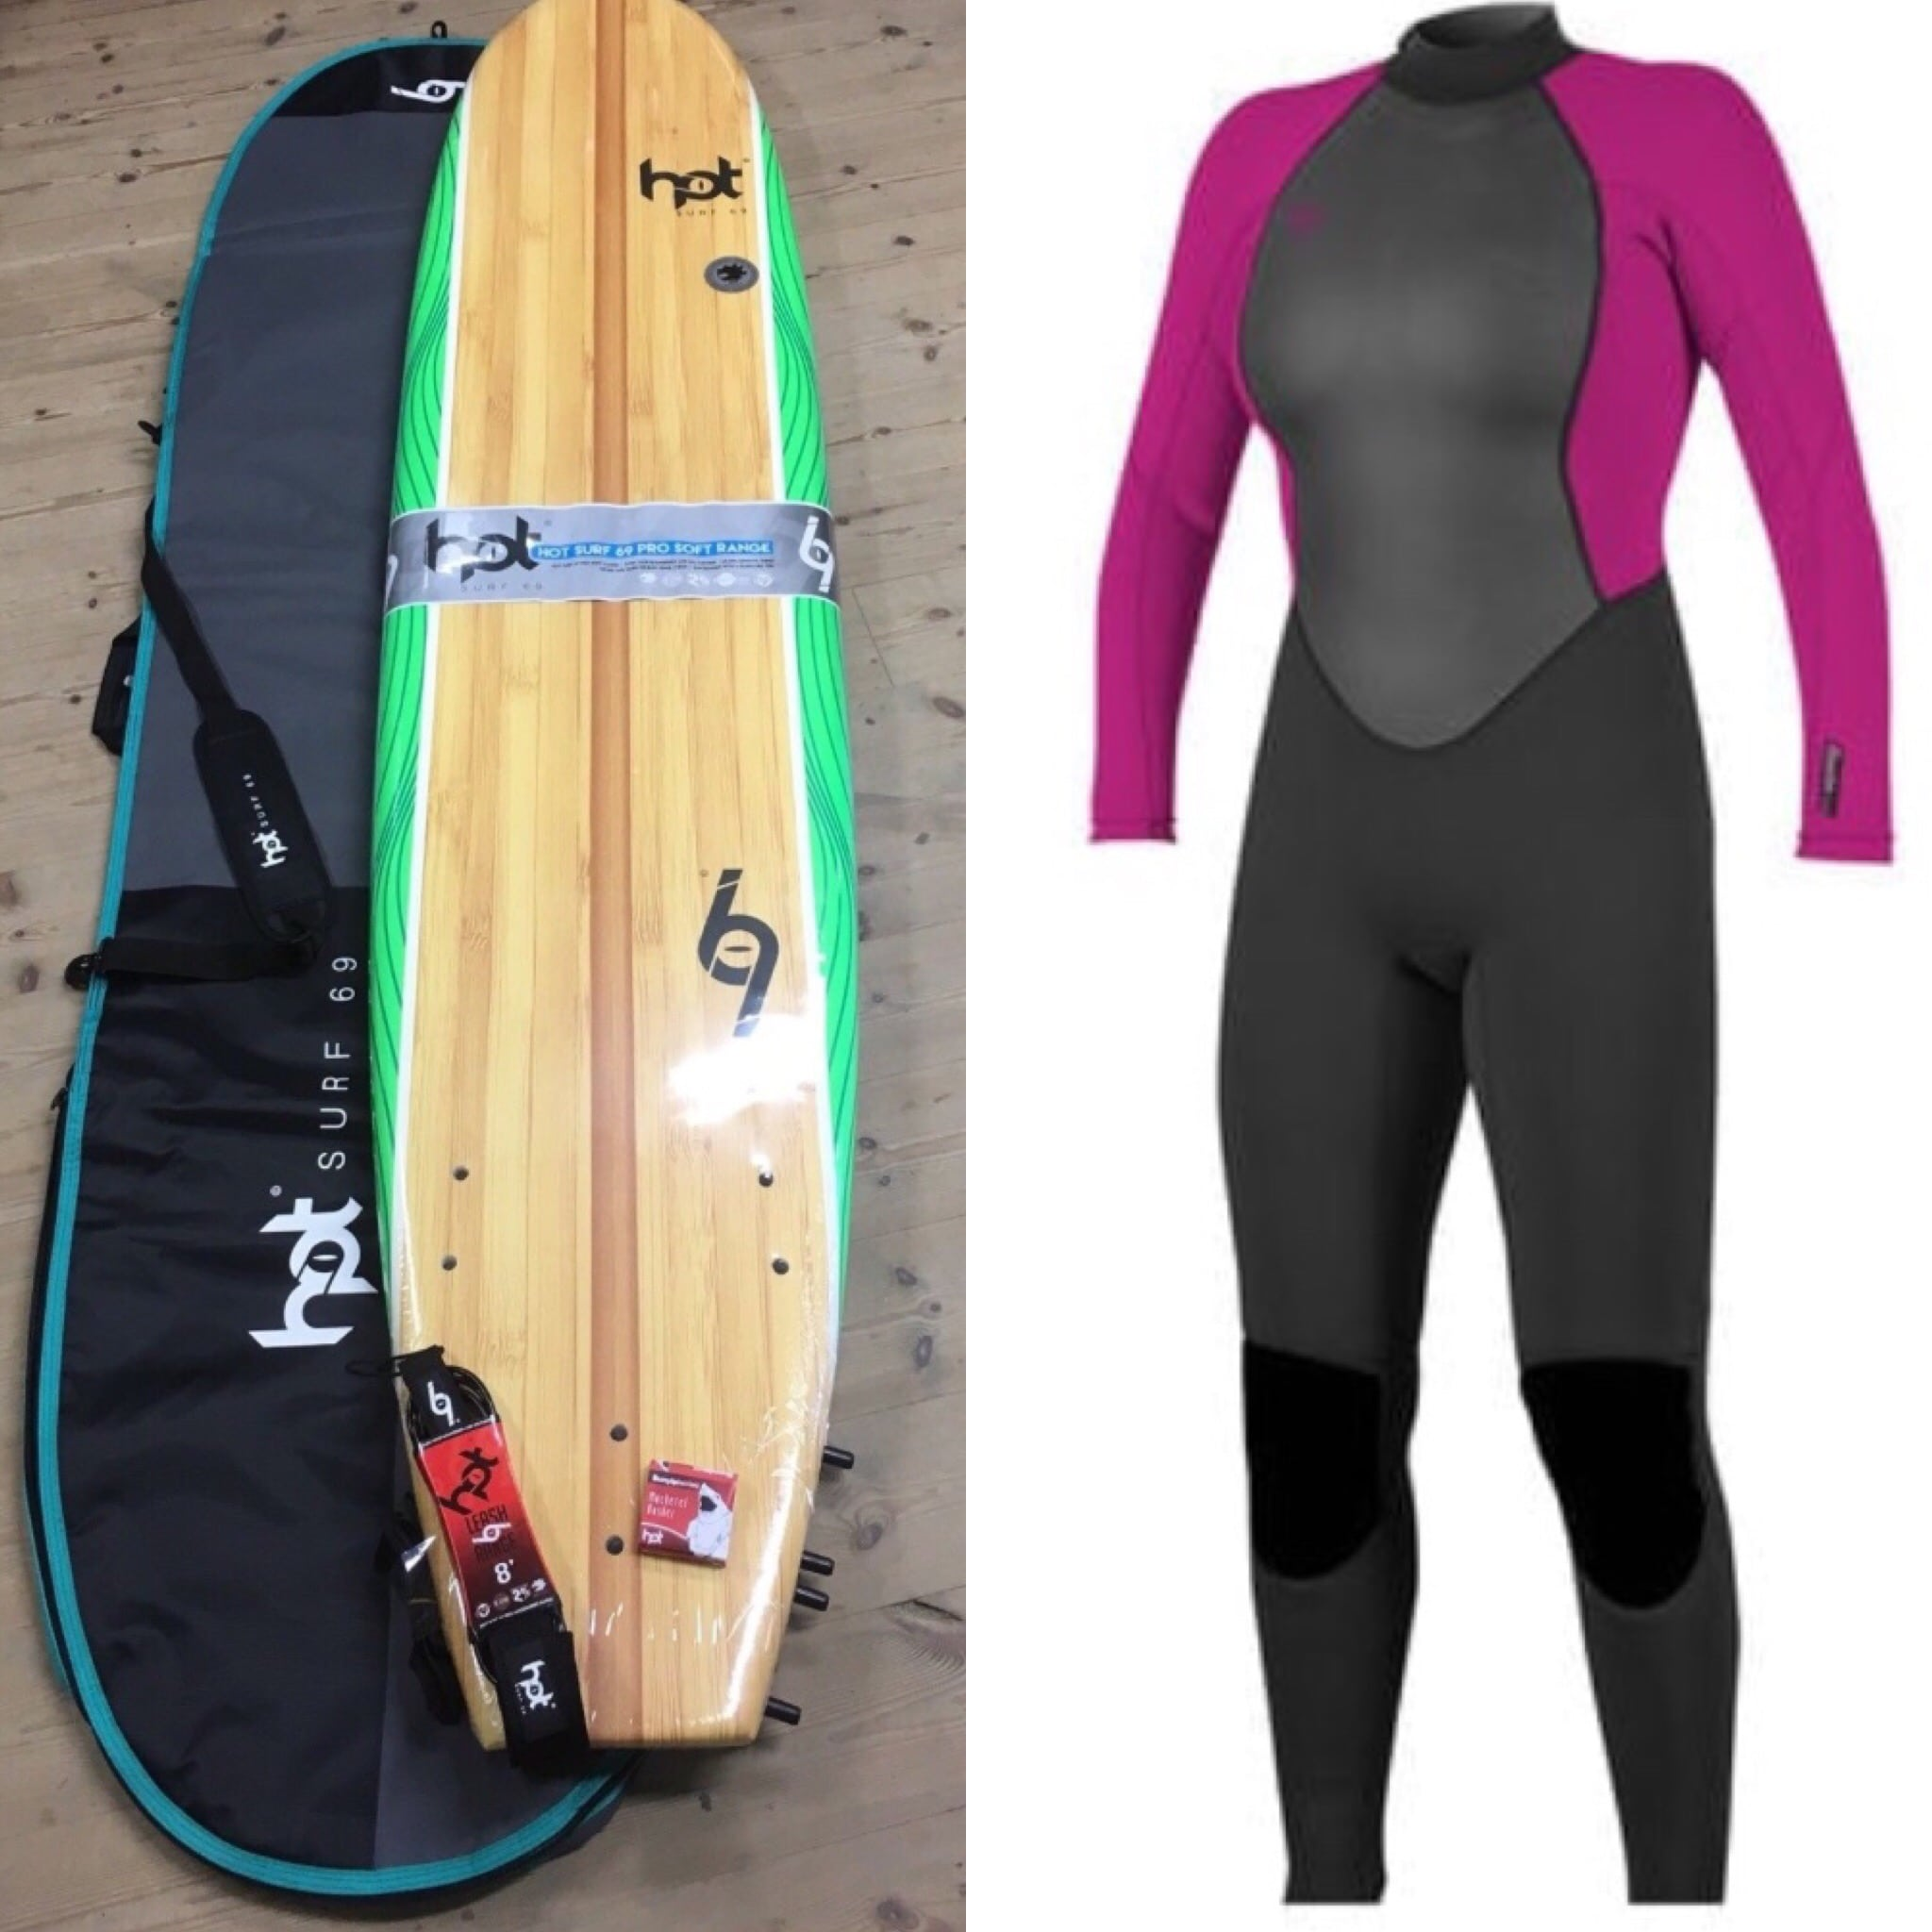 8ft Hotsurf 69 Softboard Complete Package Deal fe11d5412